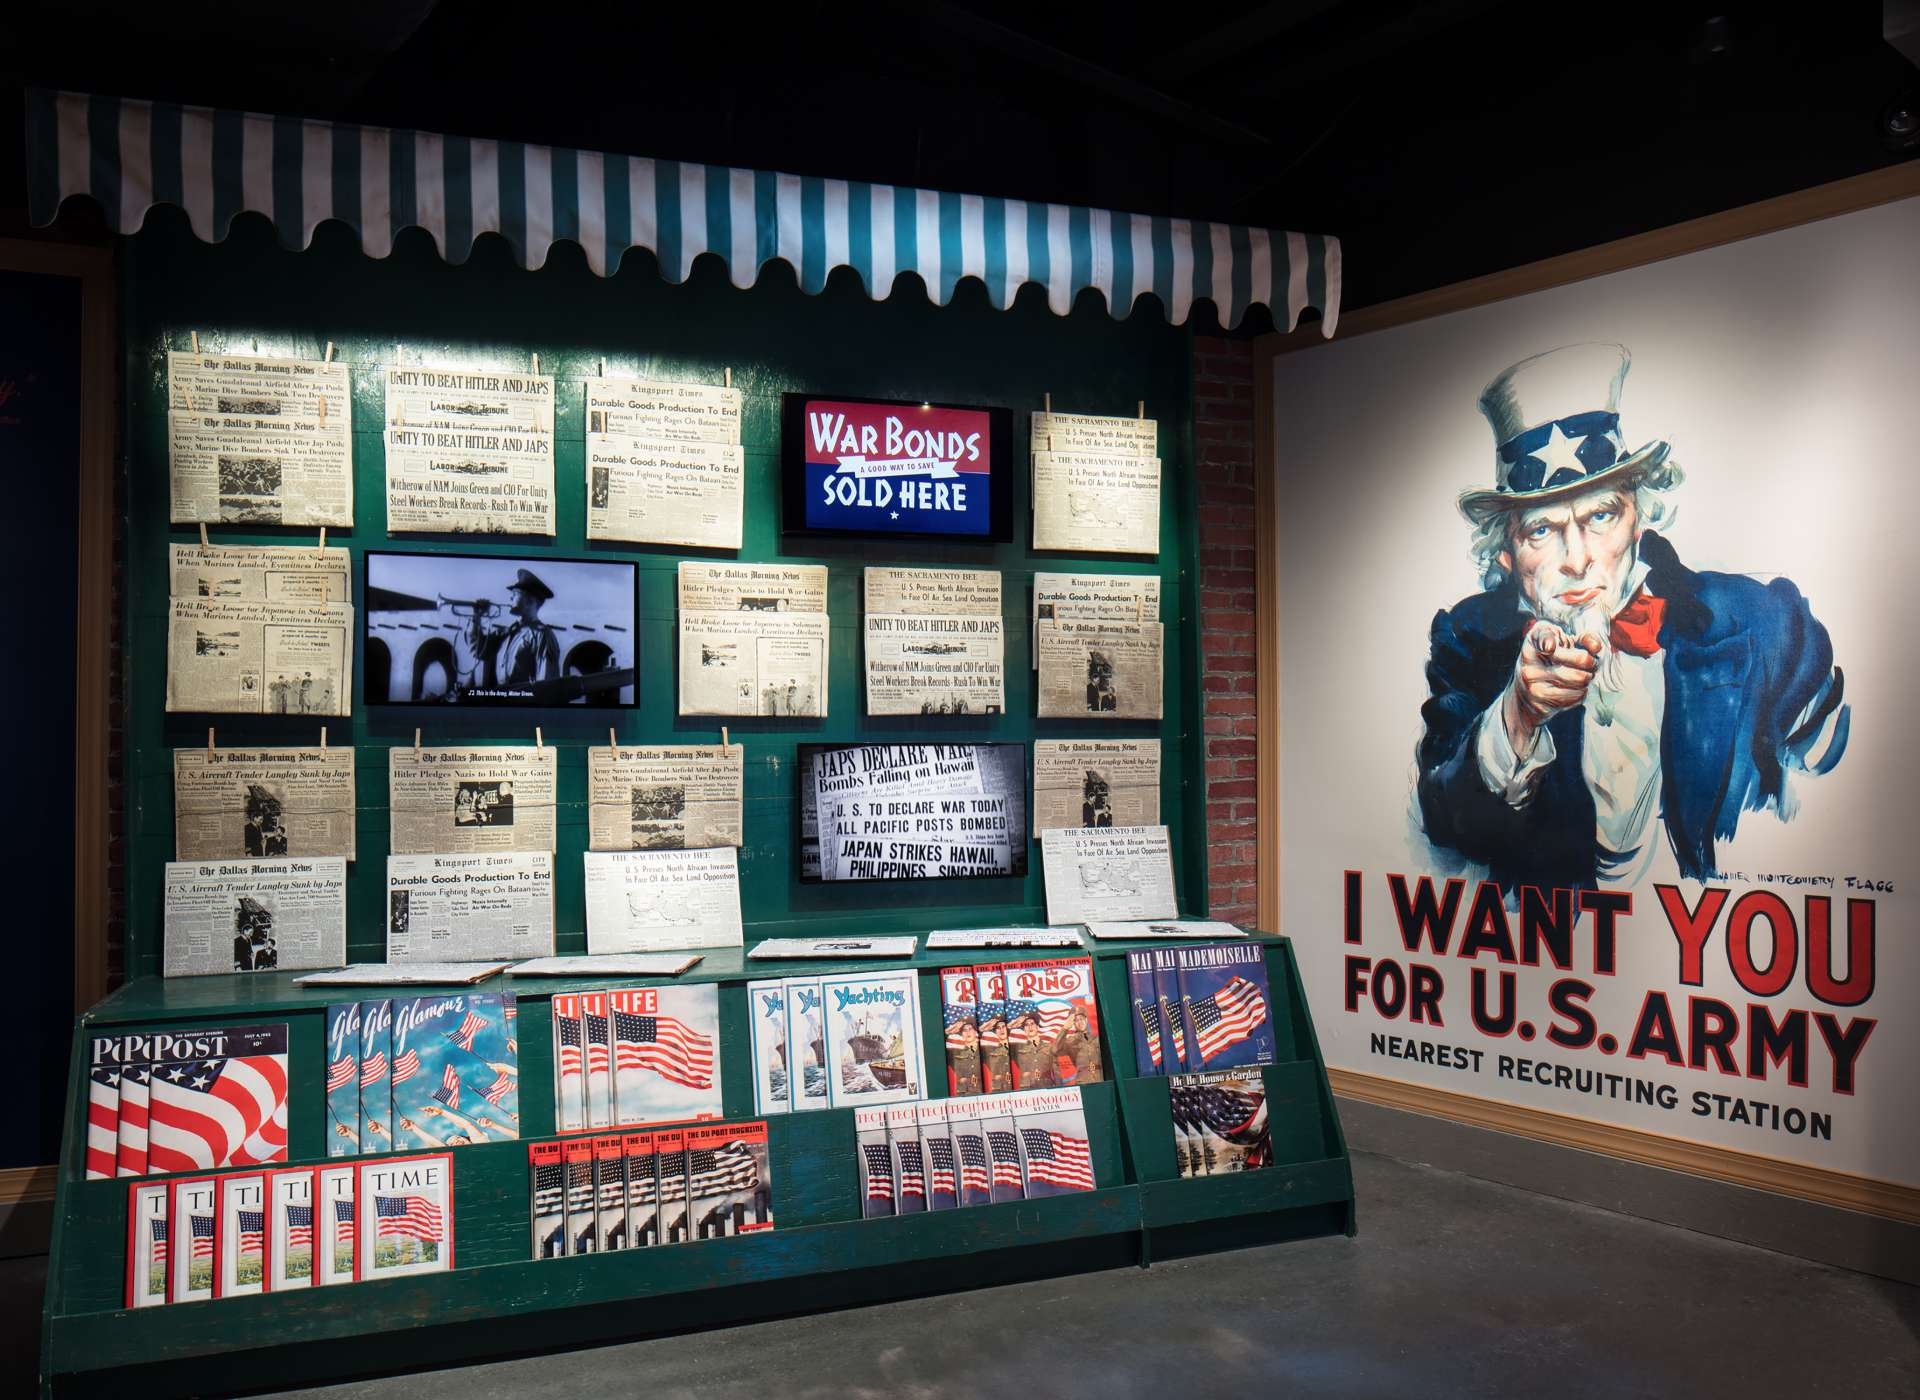 America Responds gallery, newsstand and Uncle Sam propaganda poster, Arsenal of Democracy